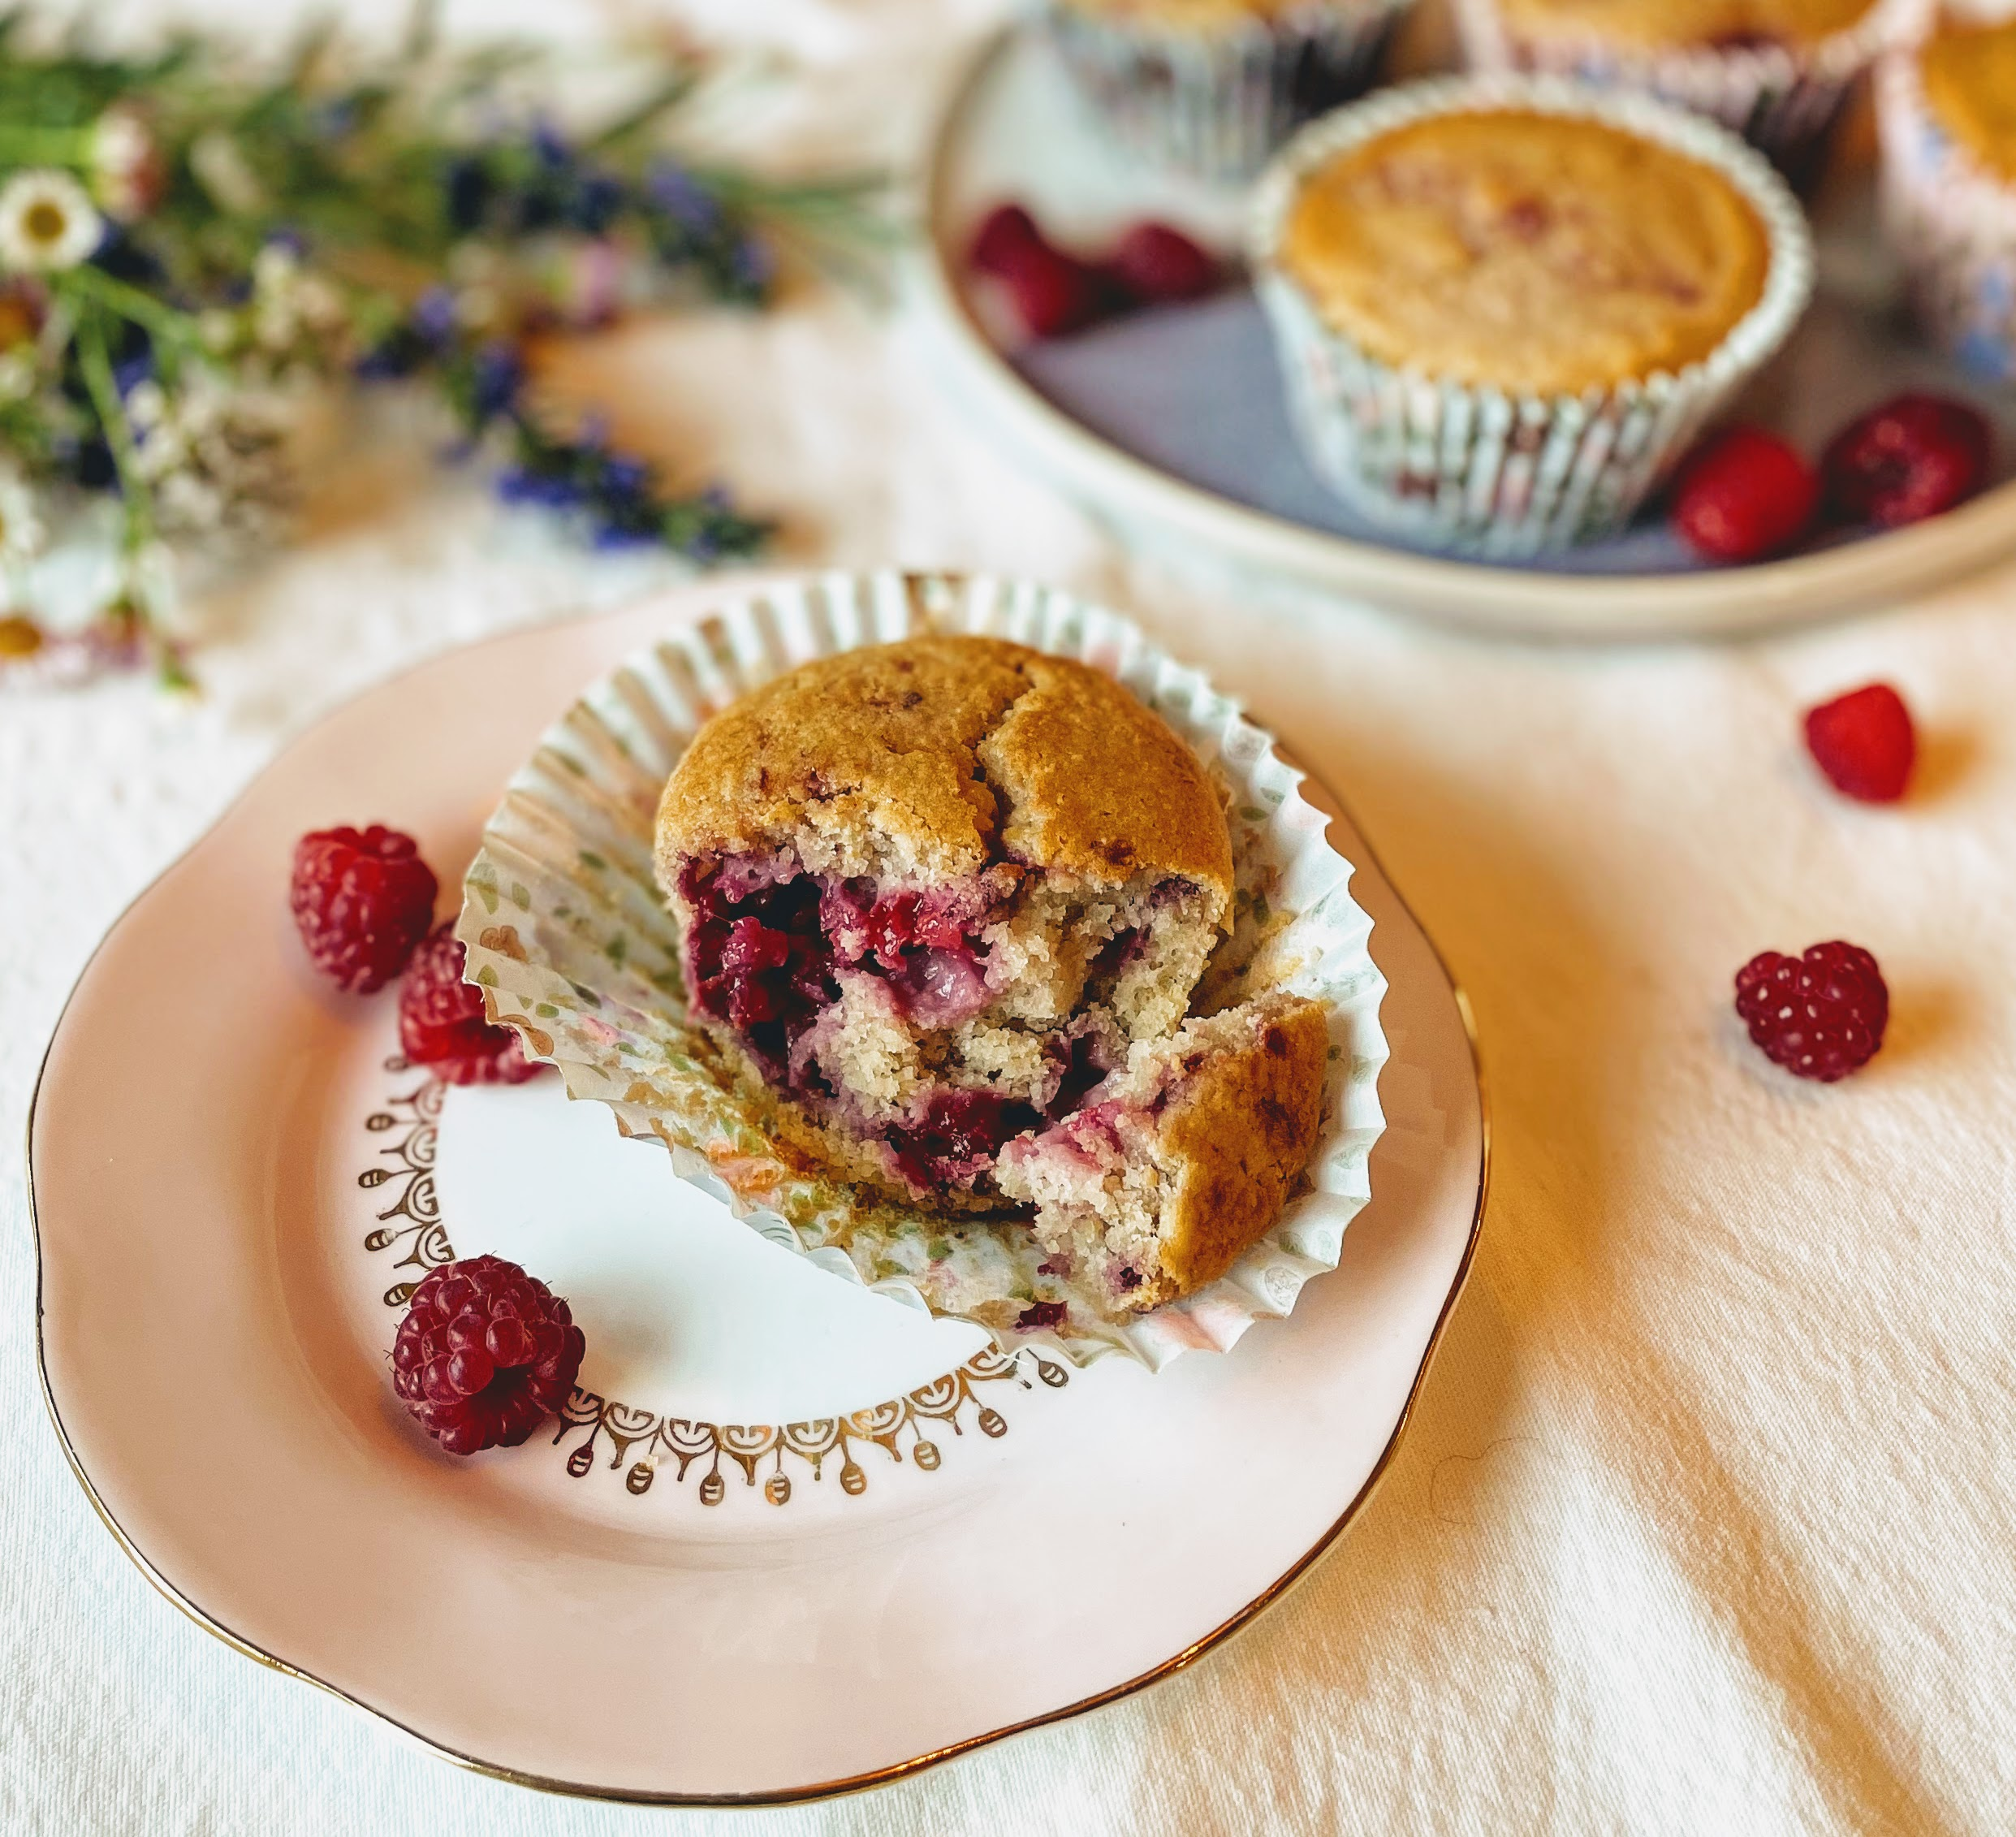 A lemon and raspberry muffin split in half. The sponge is light and delicate, and interspersed with pockets of vibrant and glistening cooked raspberry.